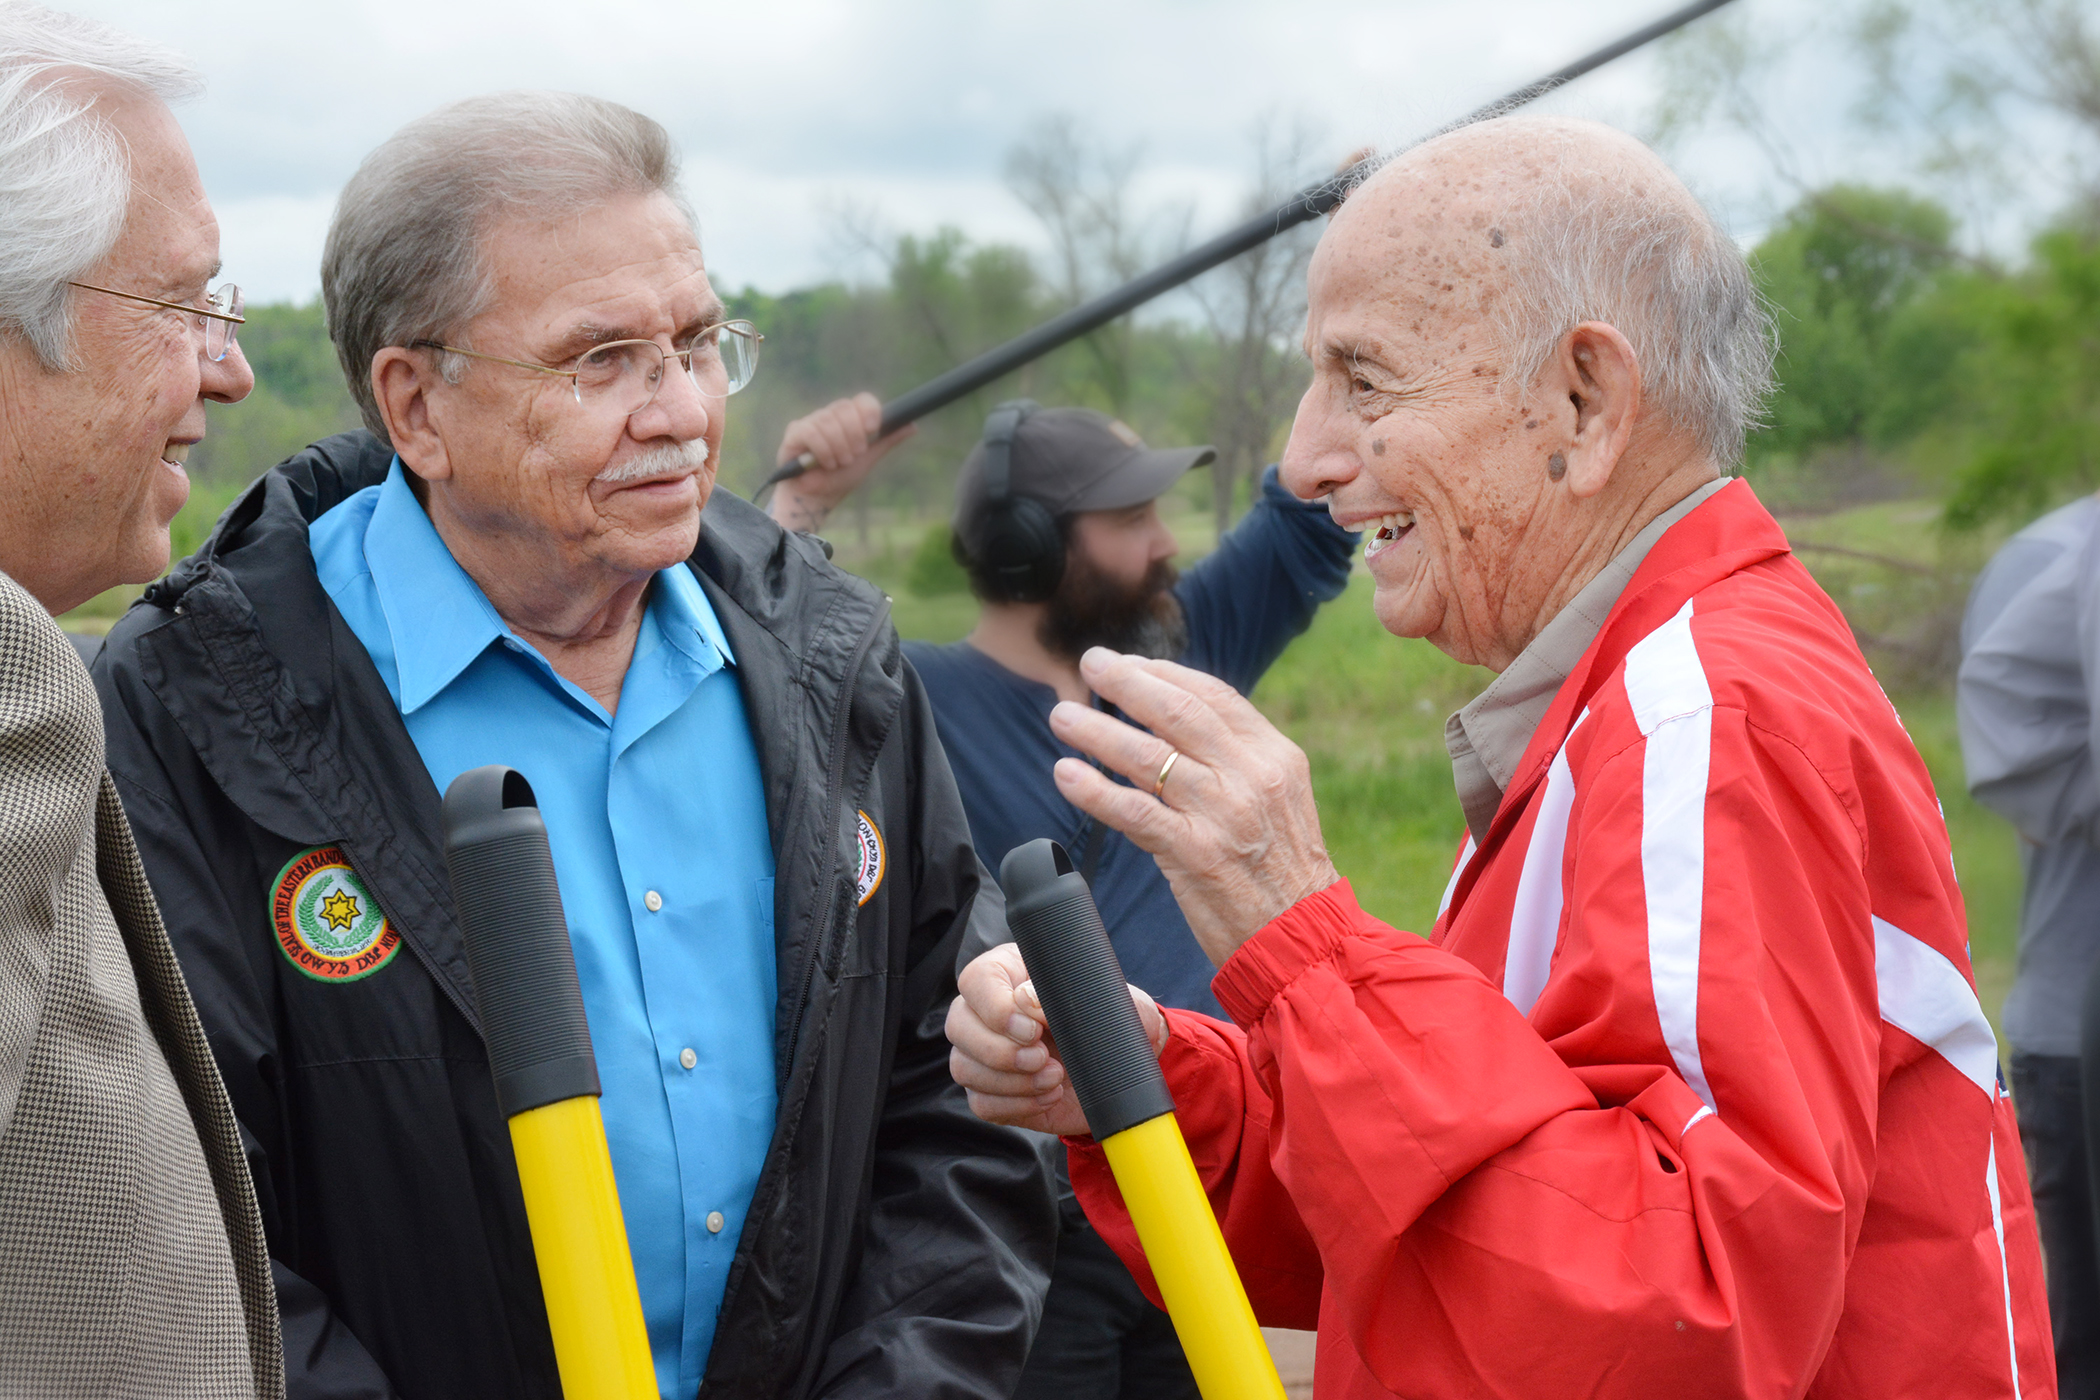 Cherokee Nation Principal Chief Bill John Baker and Deputy Chief S. Joe Crittenden visit with Cherokee Nation citizen and 1961 World Archery Champion Joe Thornton, 99, for whom the new archery park is named.